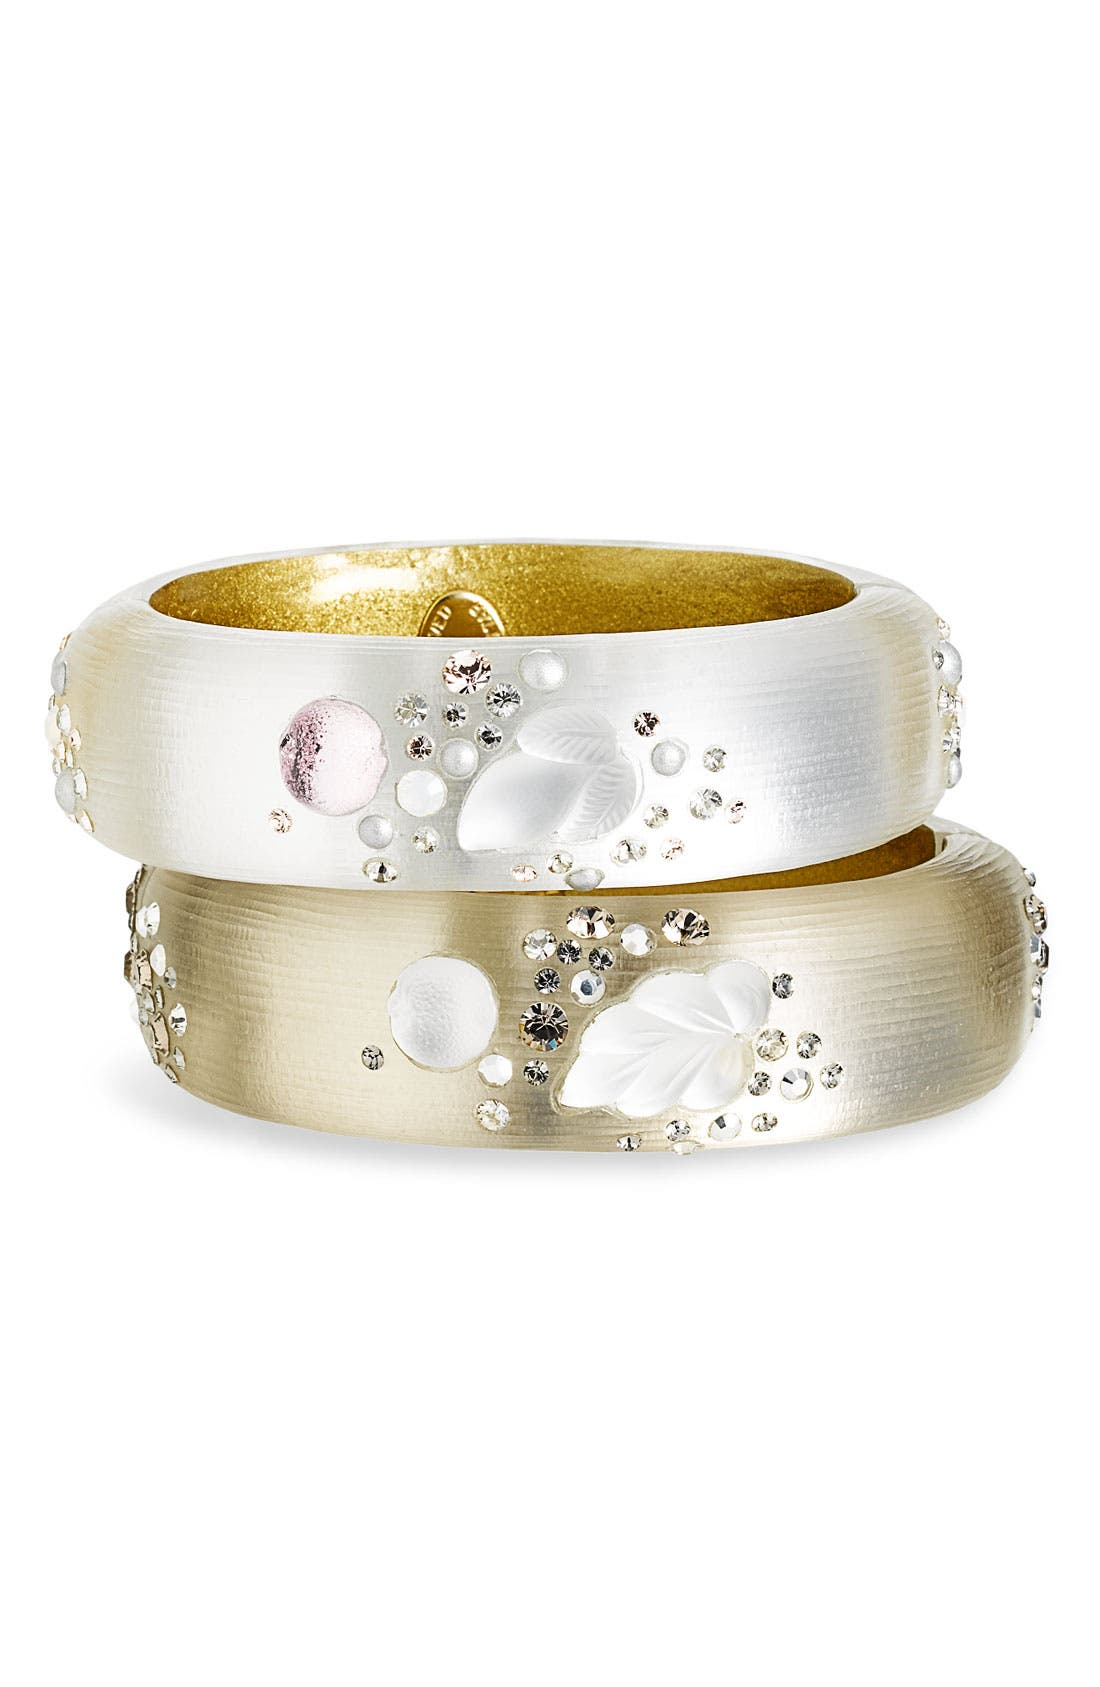 Alternate Image 1 Selected - Alexis Bittar 'Crystal Dust' Large Hinged Bangle (Nordstrom Exclusive)